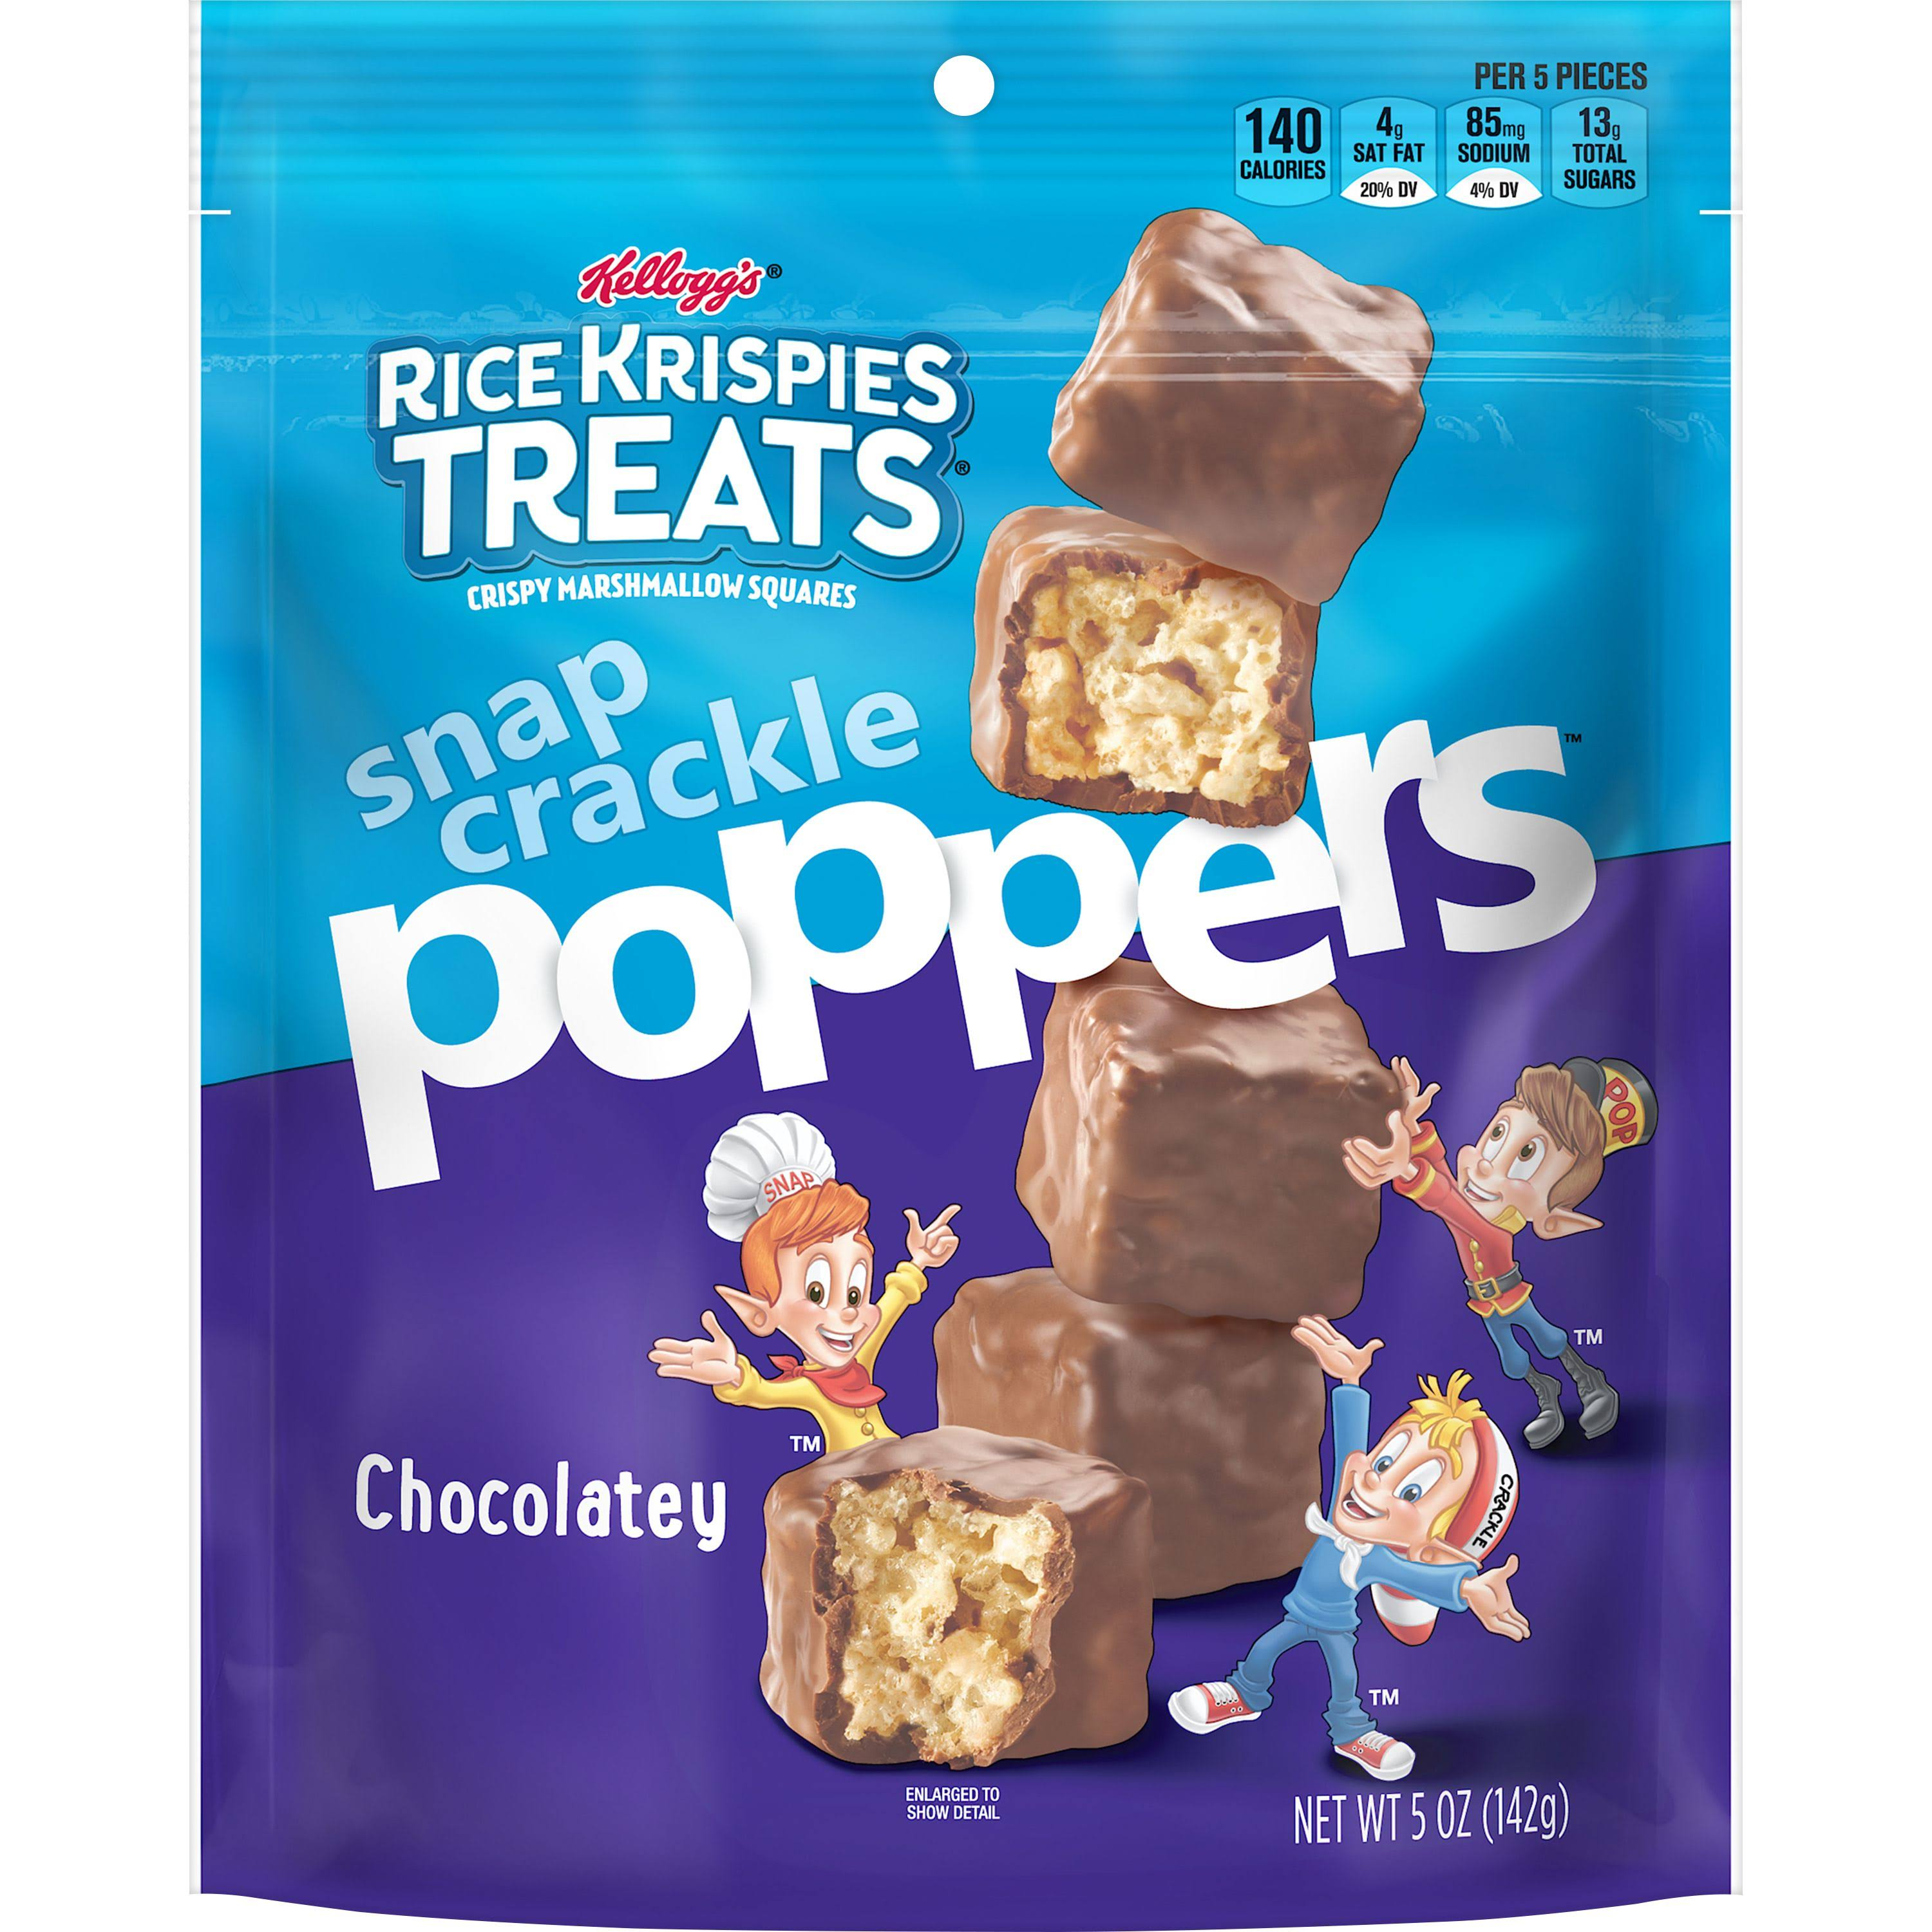 Rice Krispies Treats Snap Crackle Poppers, Chocolatey, 5 oz | CVS